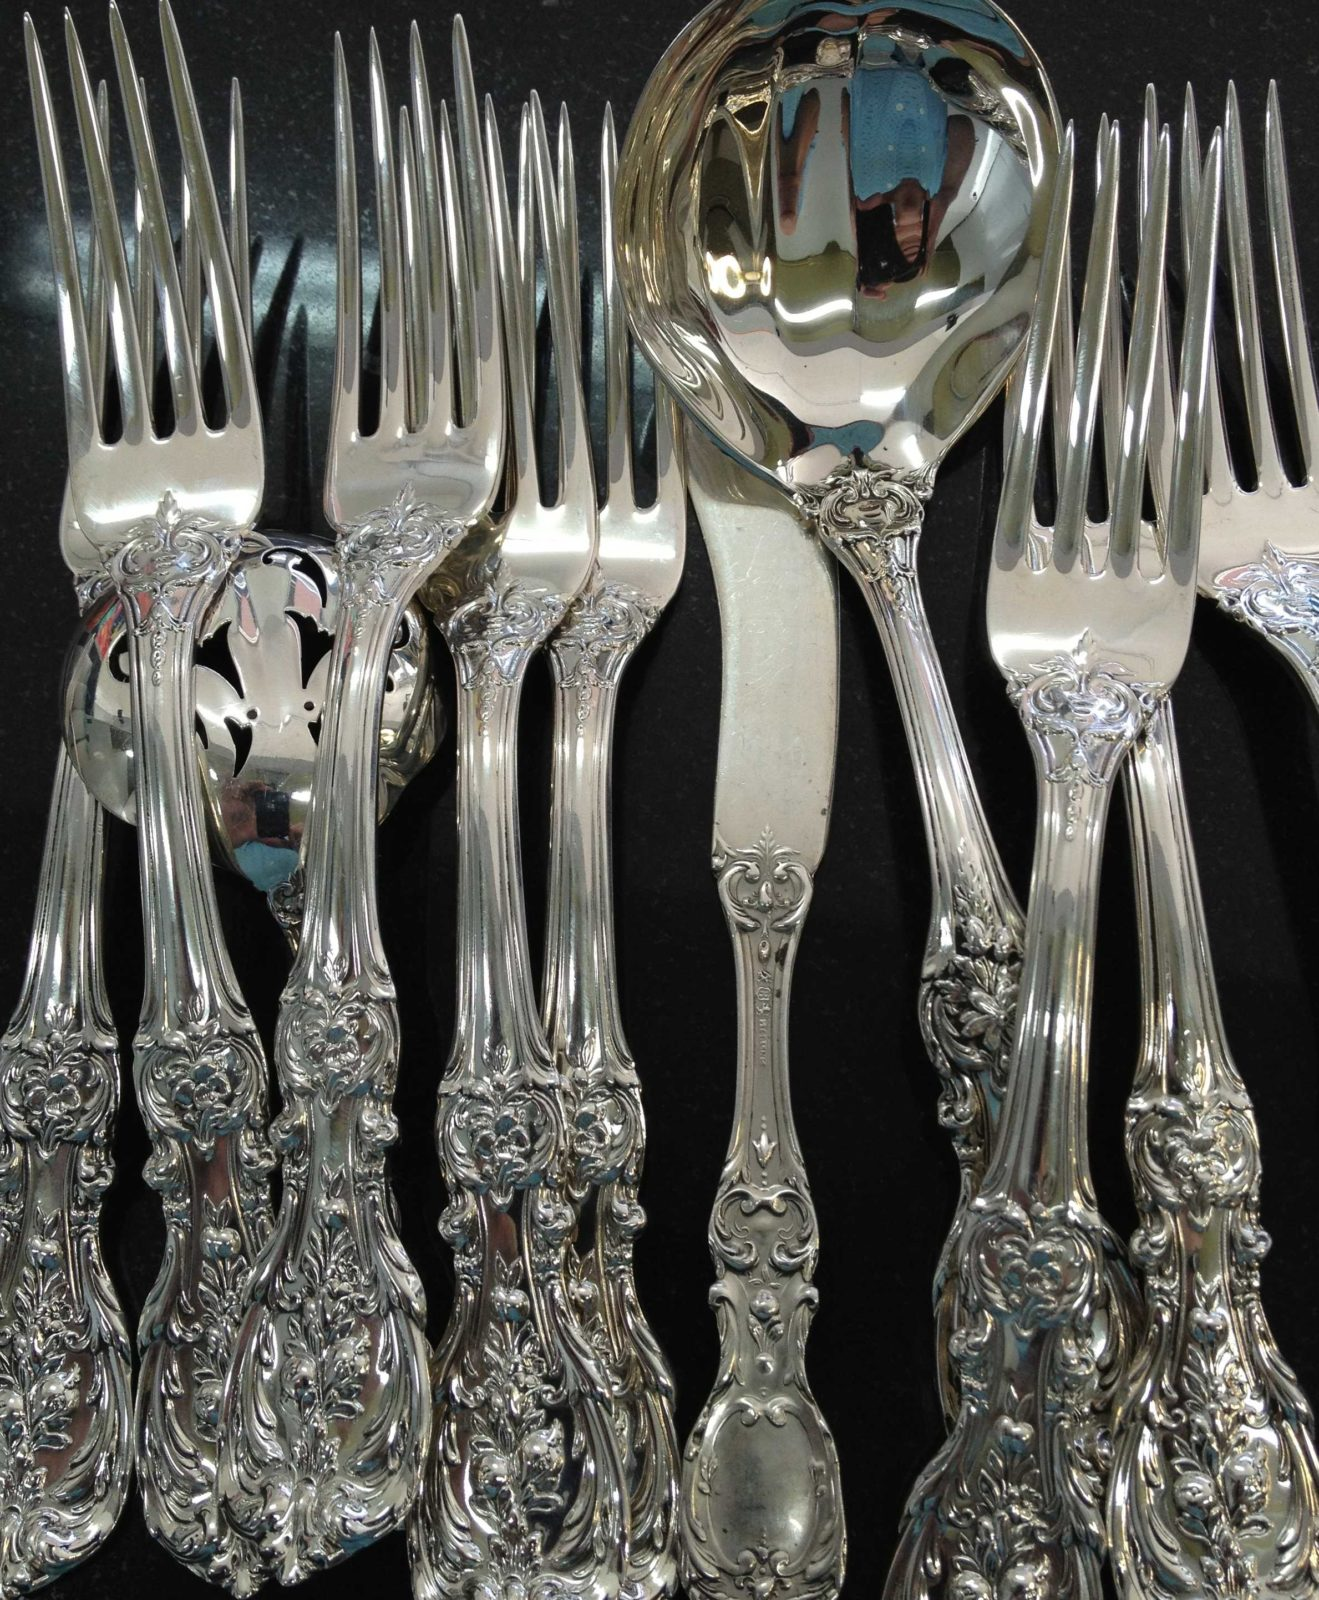 how do you know you have real silver silverware